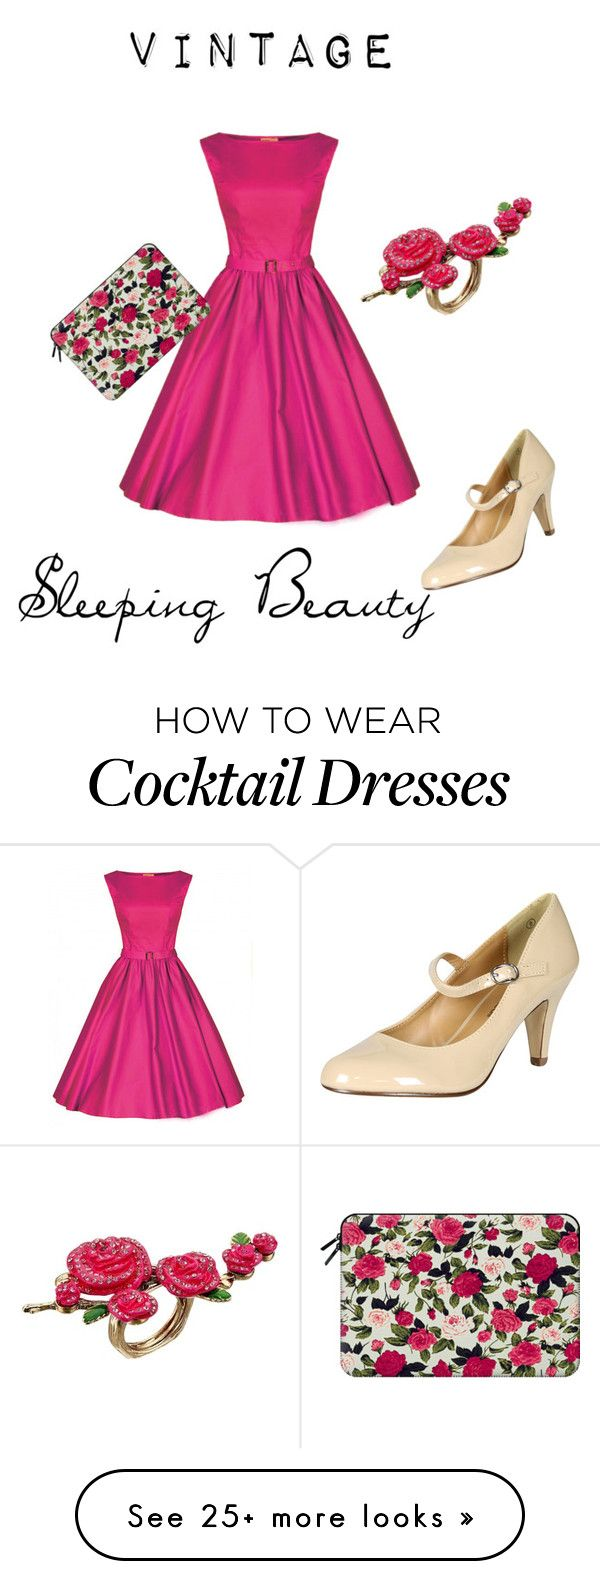 """""""Vintage Sleeping Beauty"""" by rachael-disney on Polyvore featuring Betsey Johnson, Casetify and vintage"""